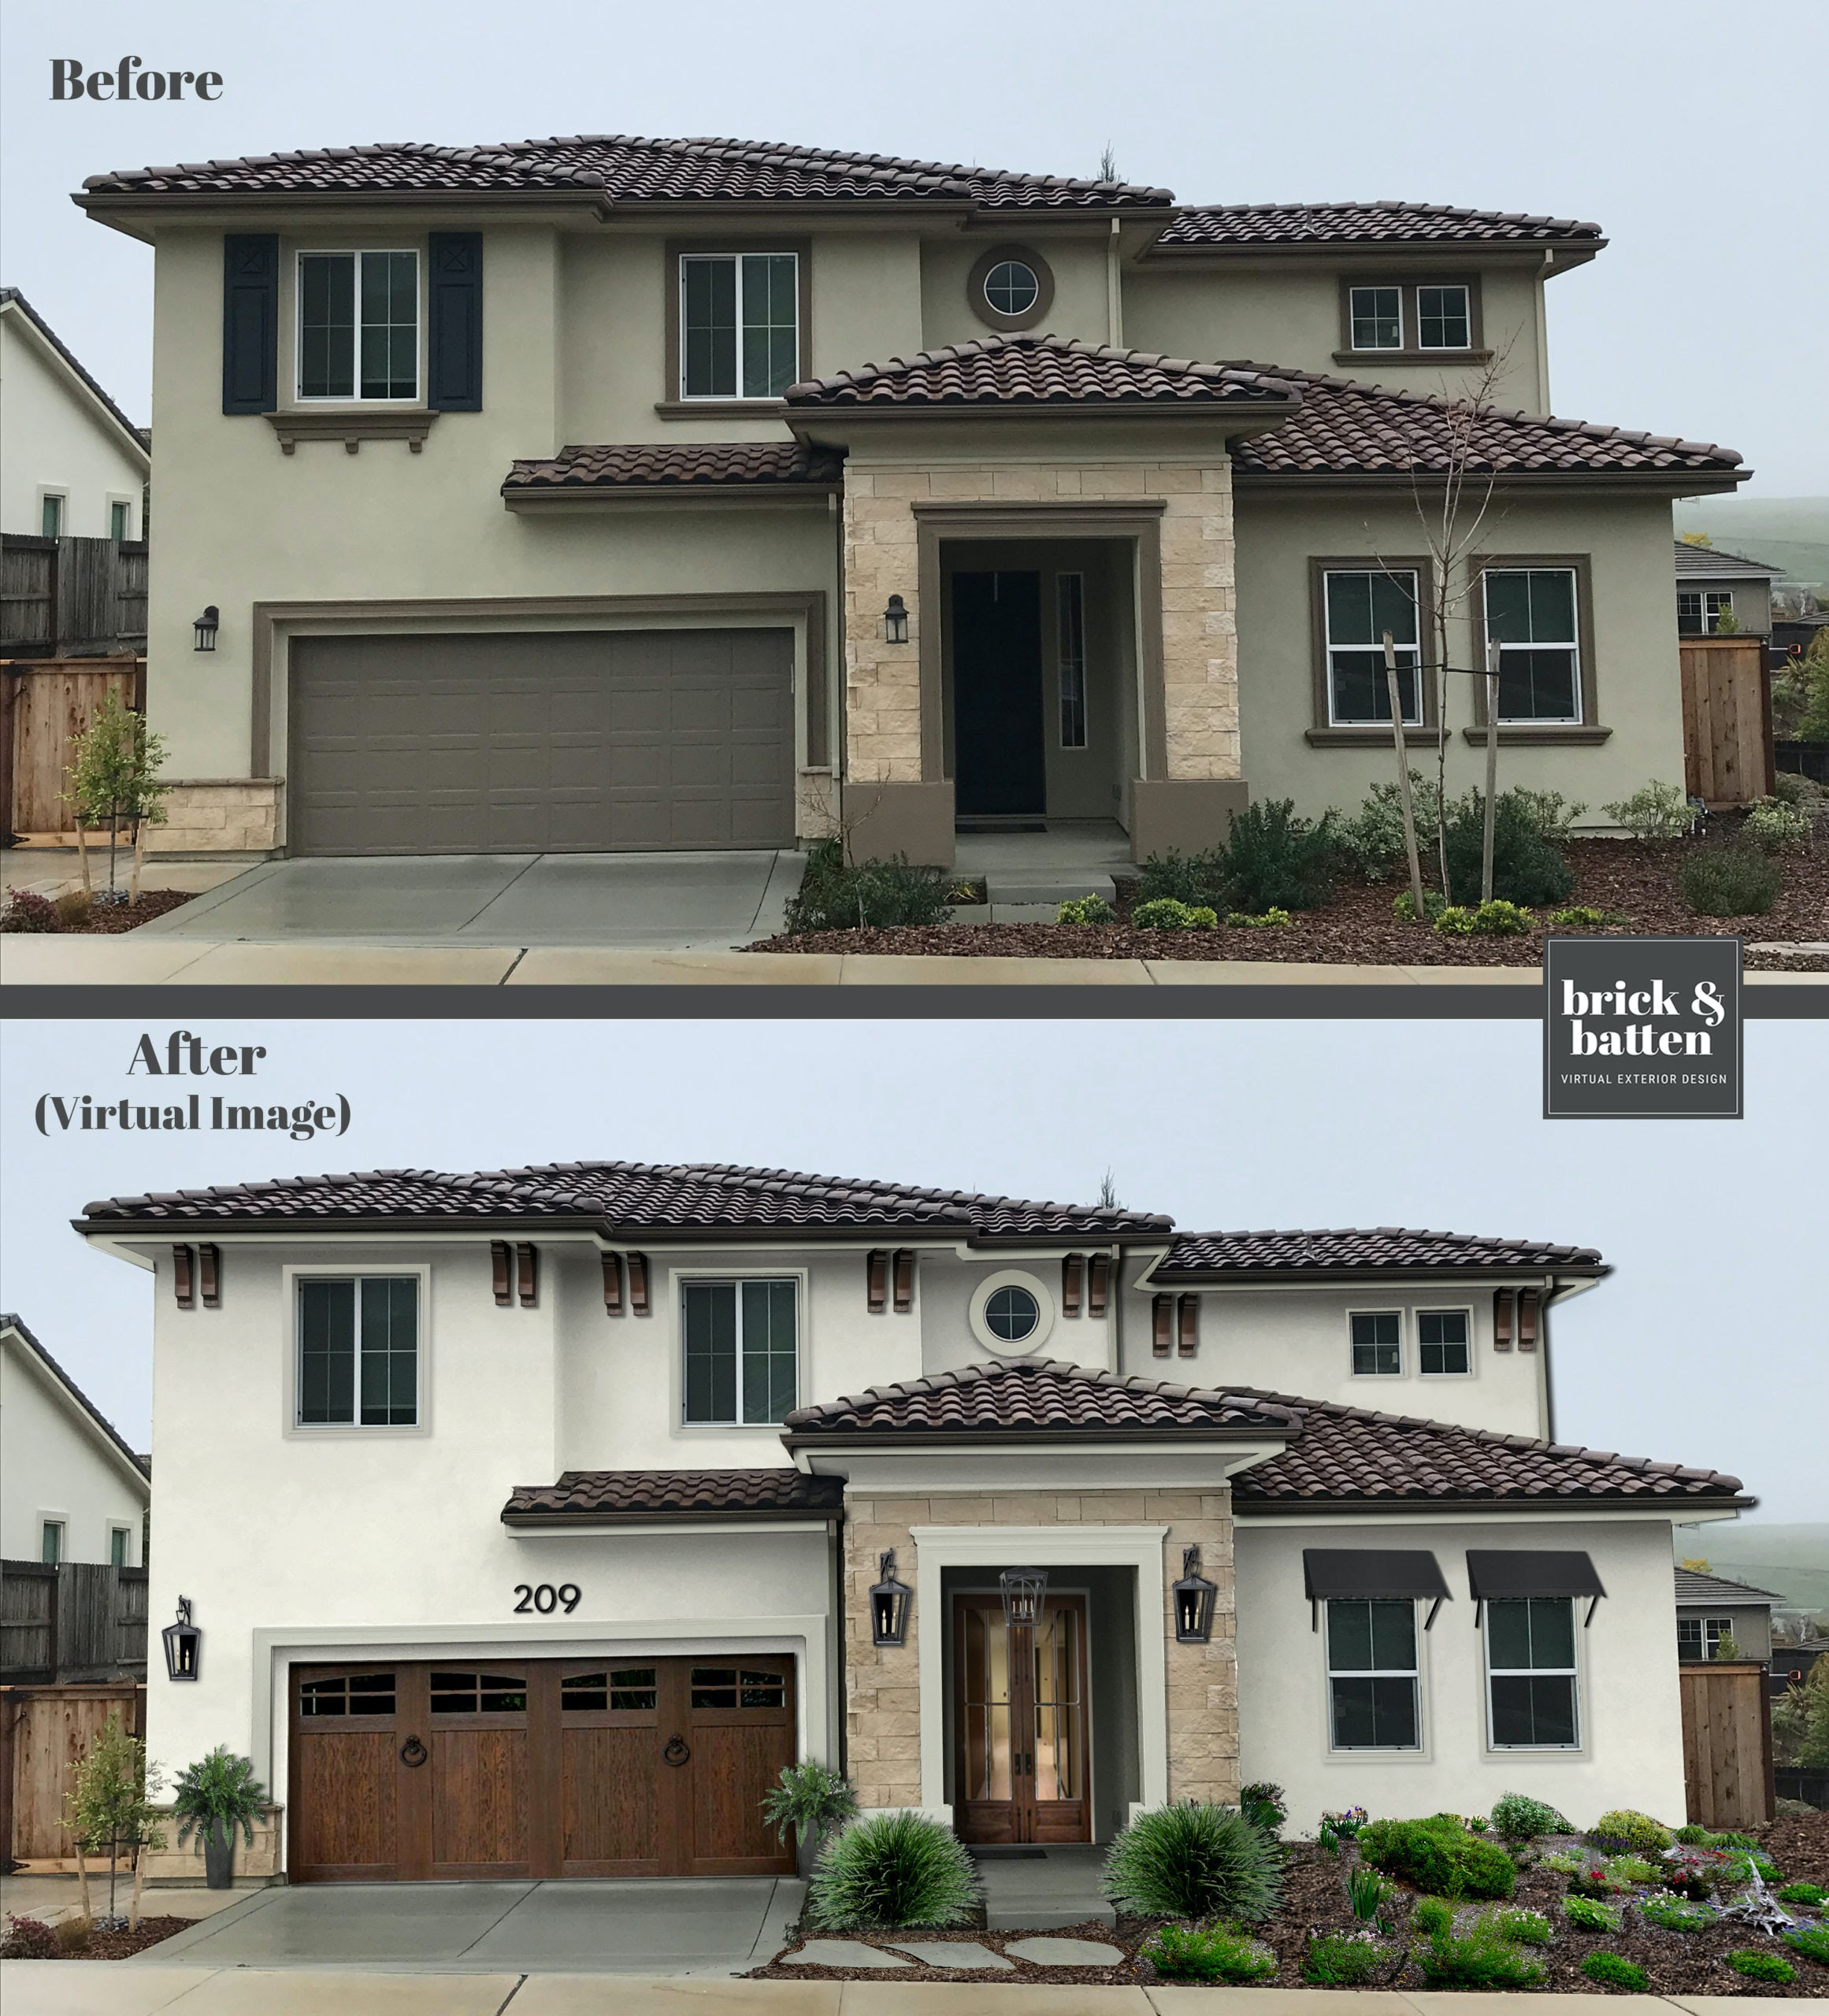 15 Exterior Paint Colors That Are On Trend For 2021 Brick Batten